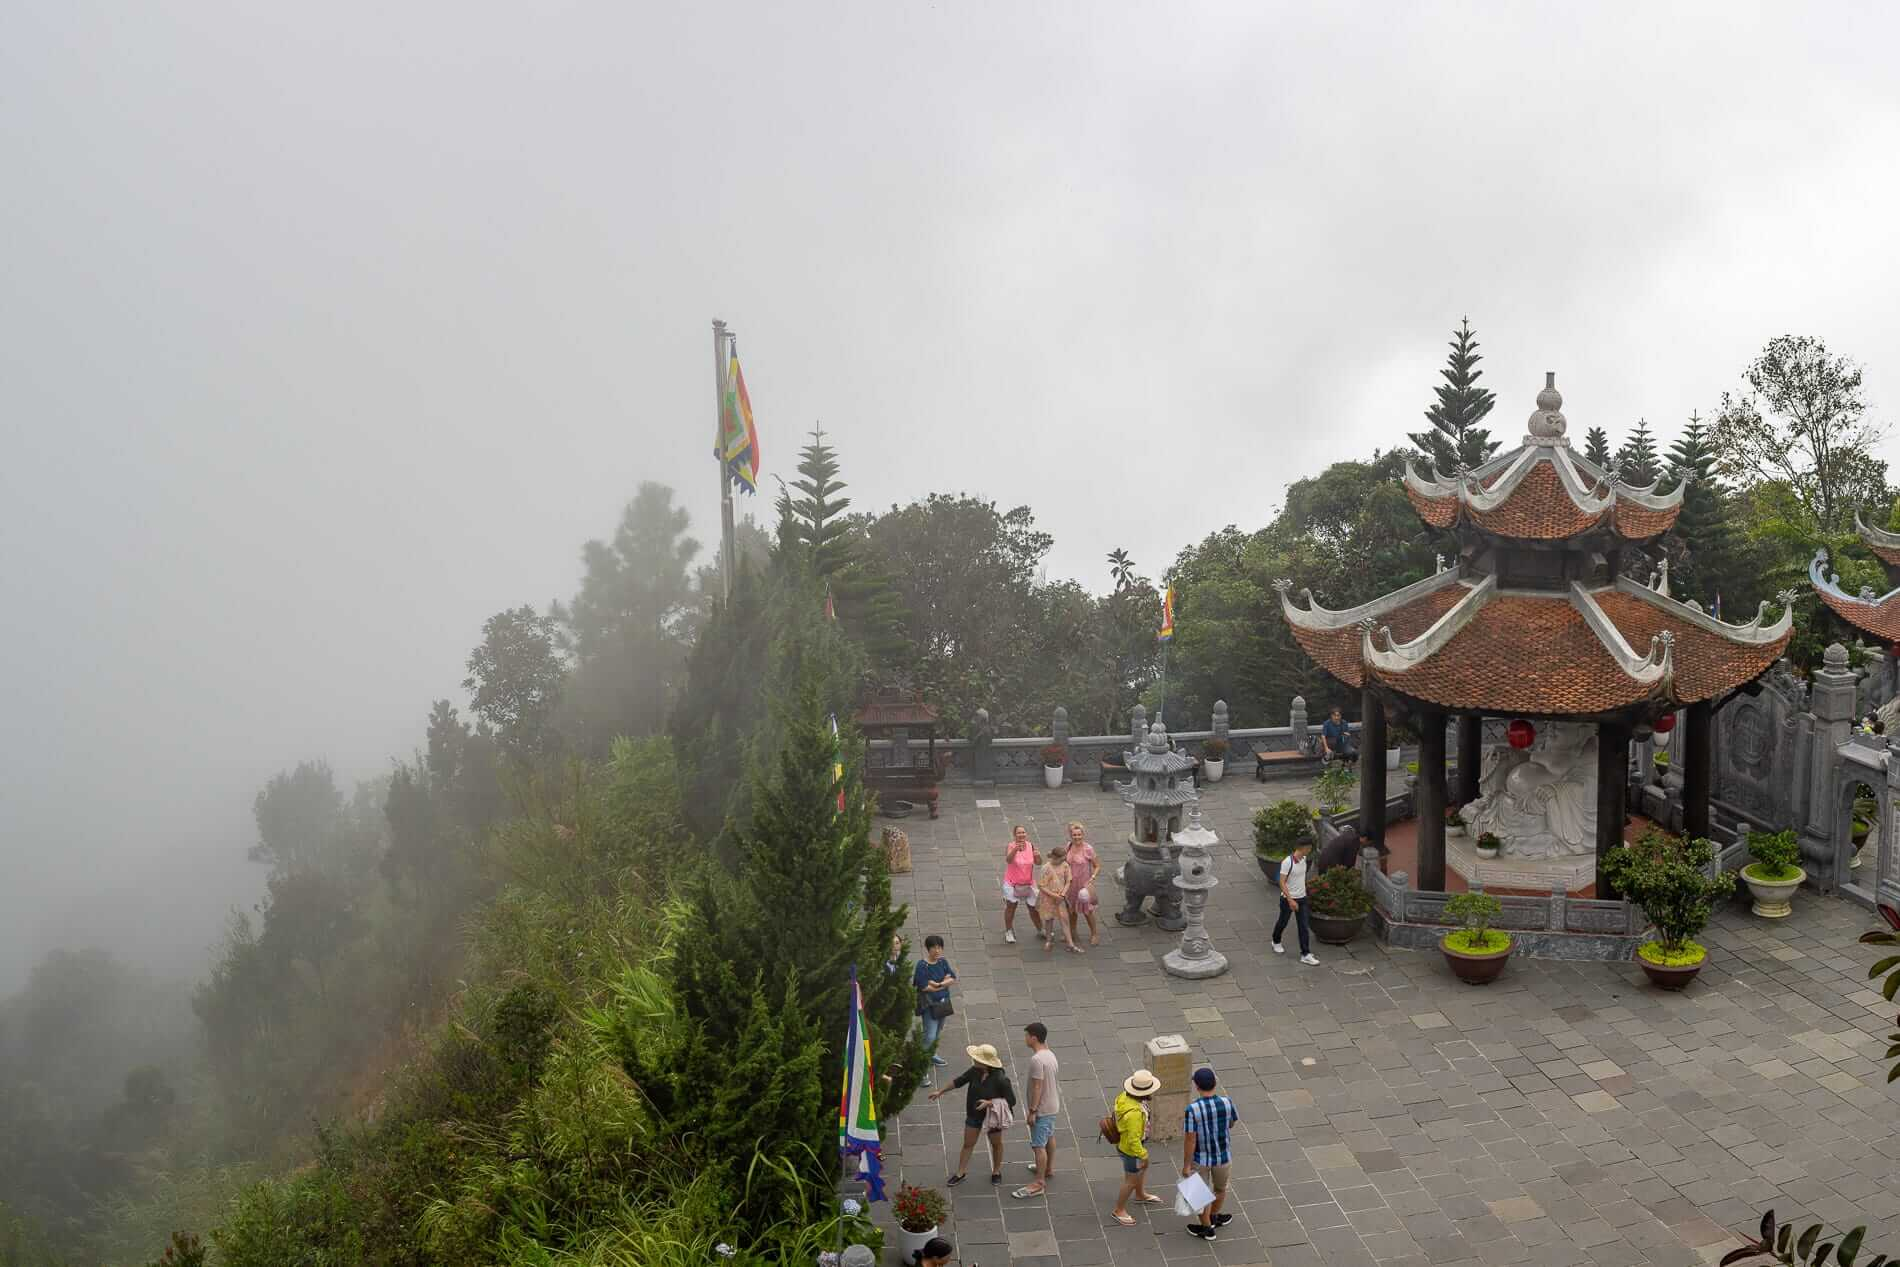 Temple and tourists on a foggy day